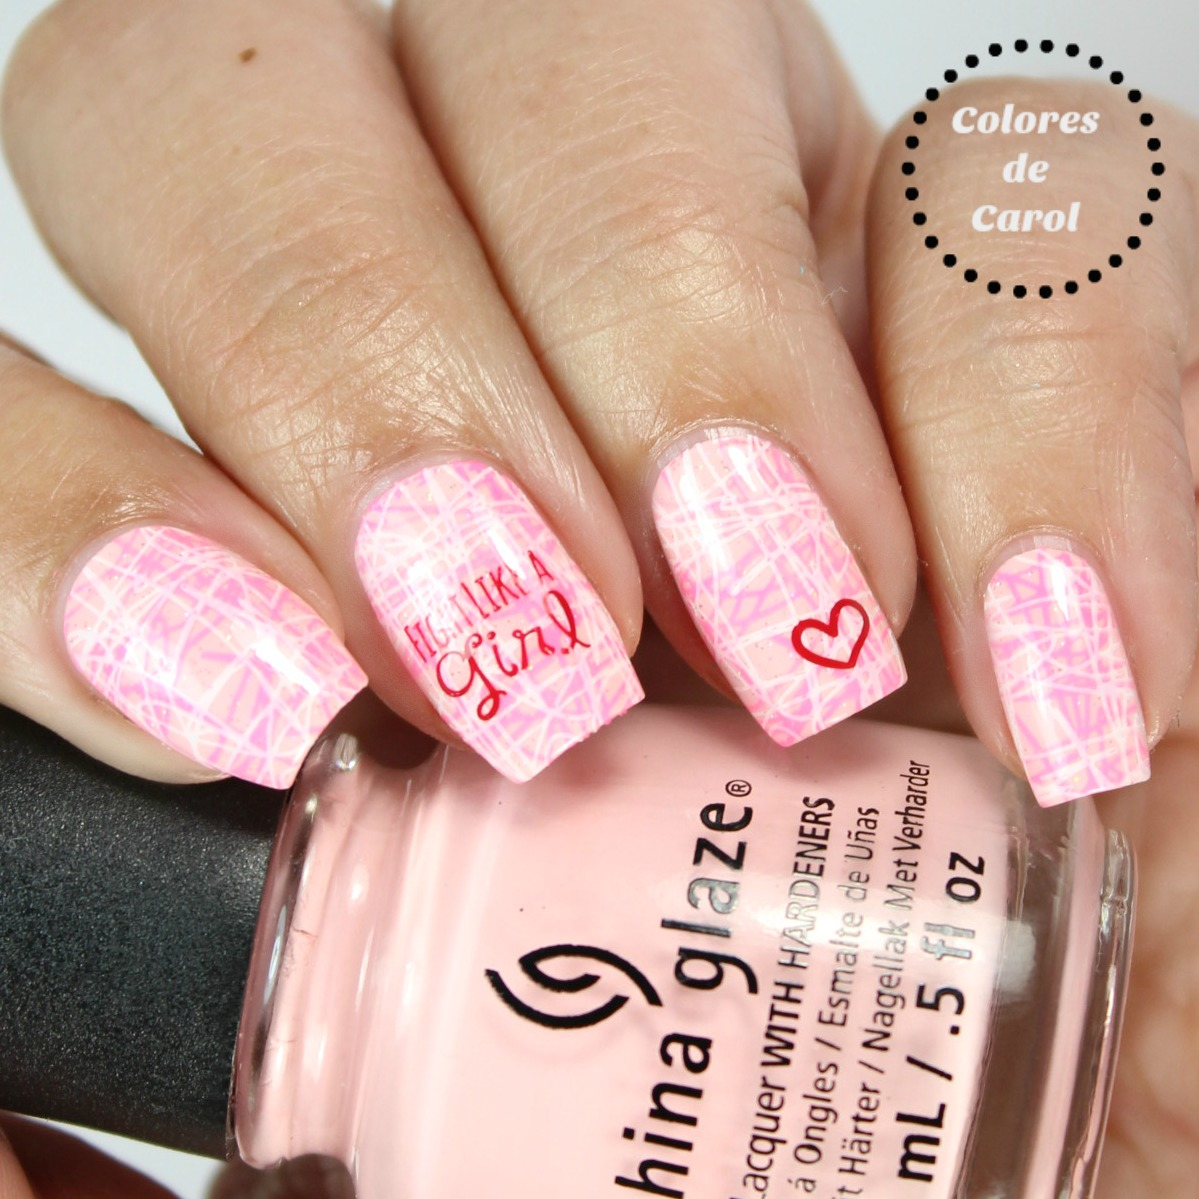 Colores de Carol: Pink Nails for breast Cancer Awareness